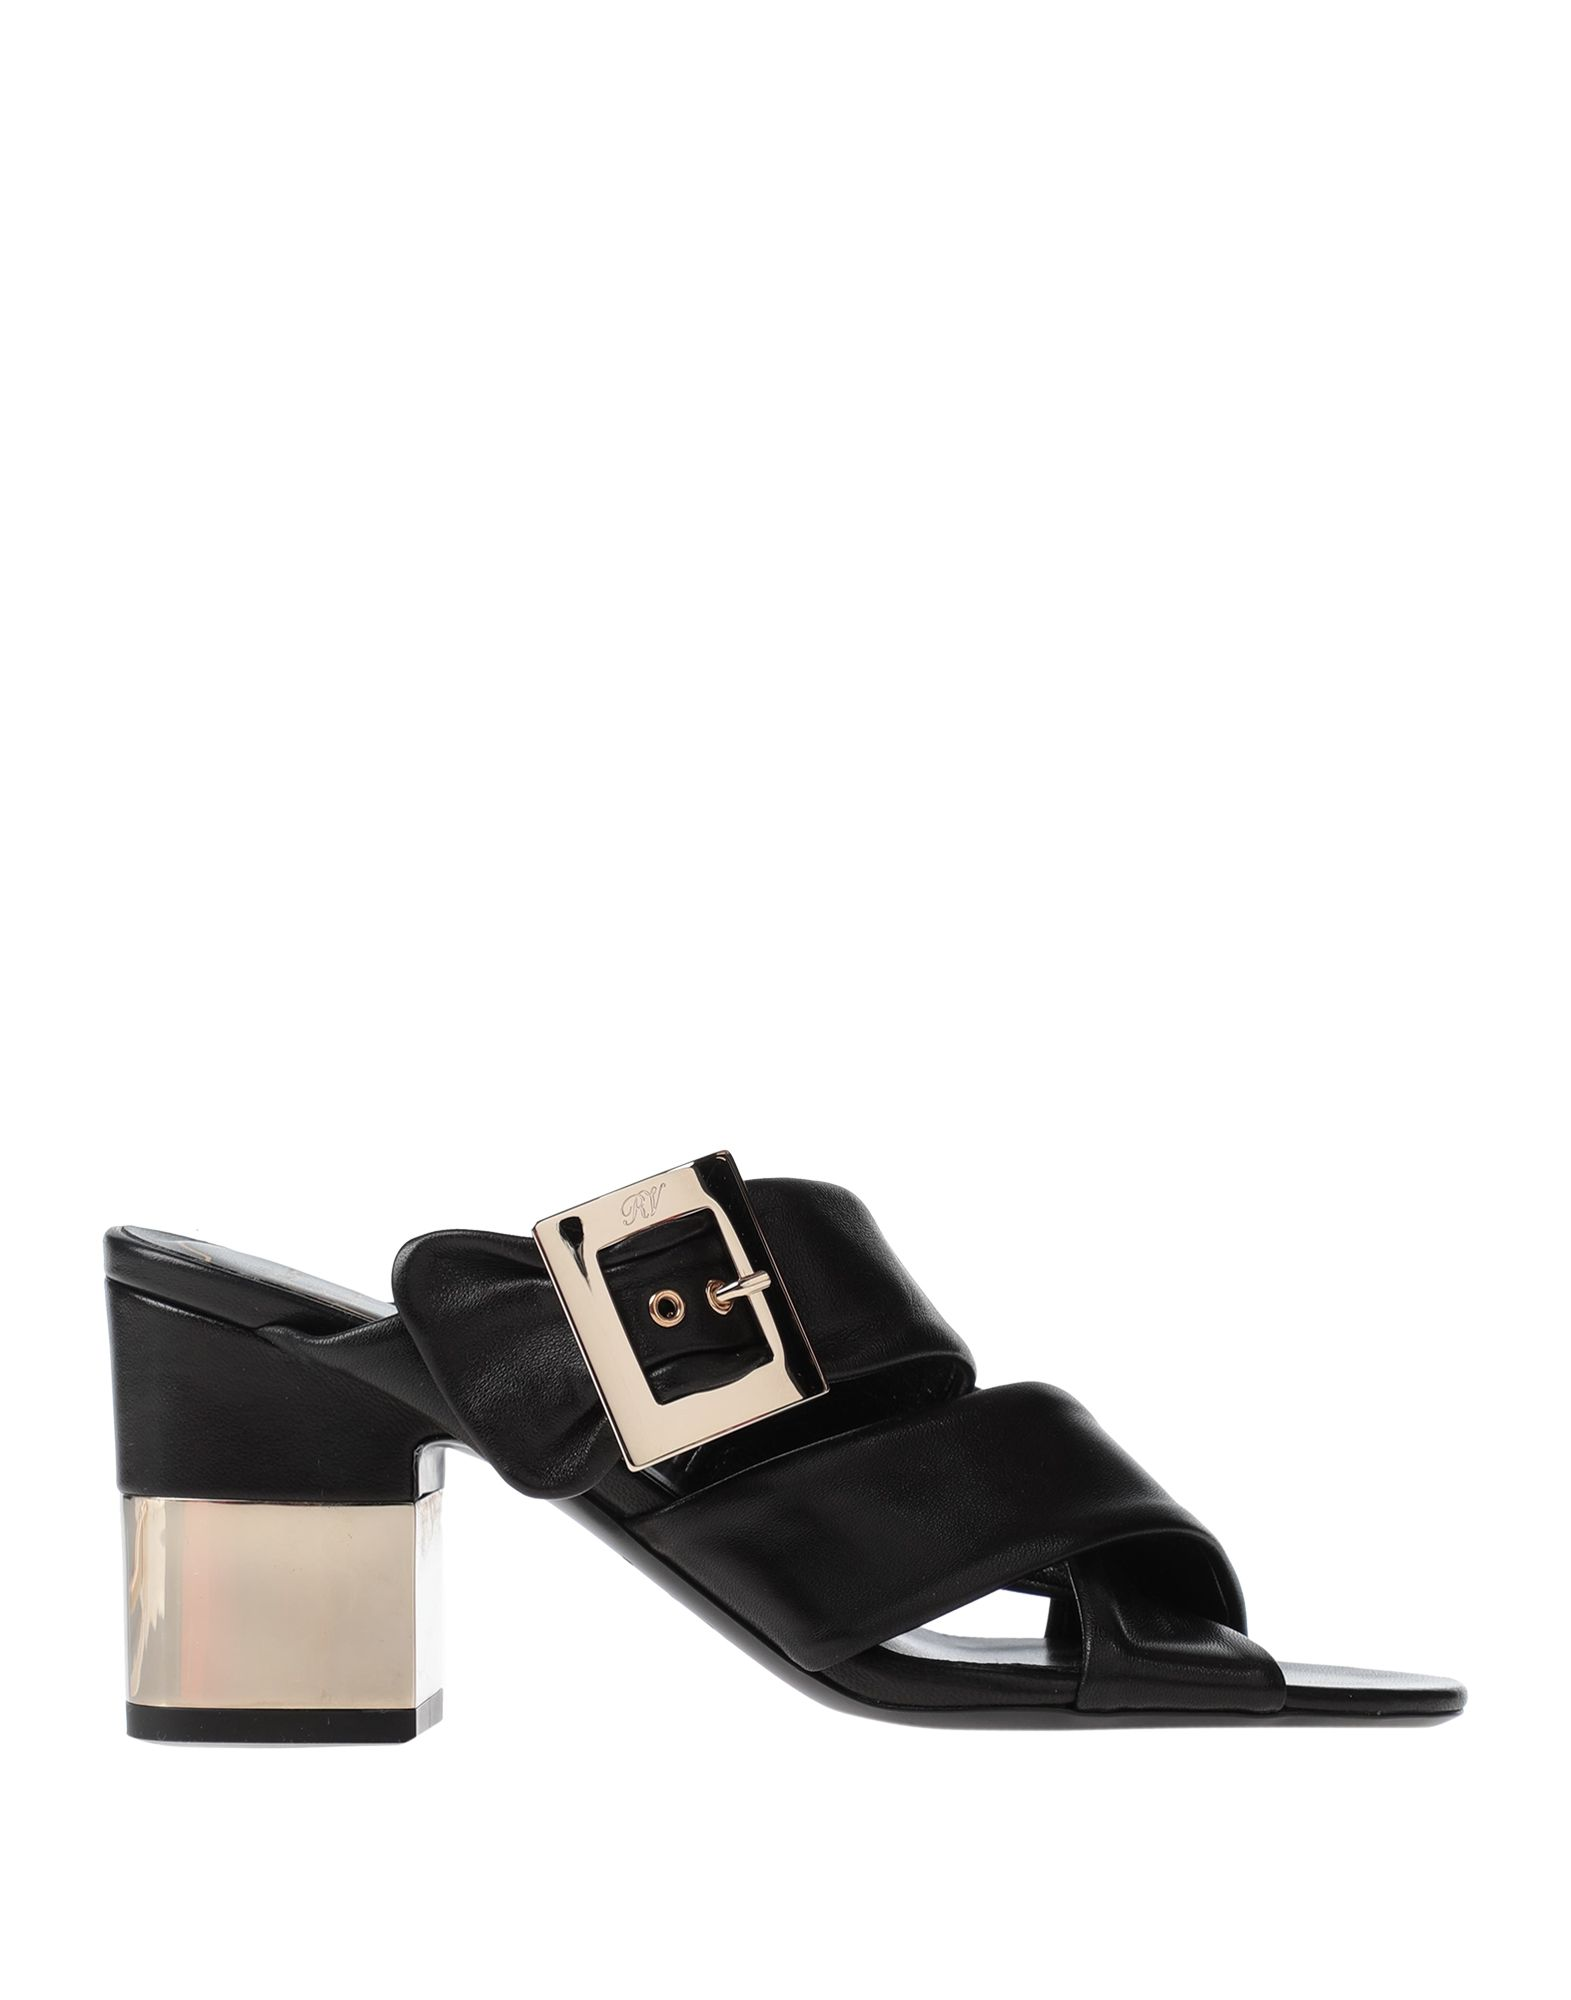 ROGER VIVIER Sandals. leather, no appliqués, solid color, buckle fastening, round toeline, square heel, leather lining, leather sole, contains non-textile parts of animal origin. Soft Leather